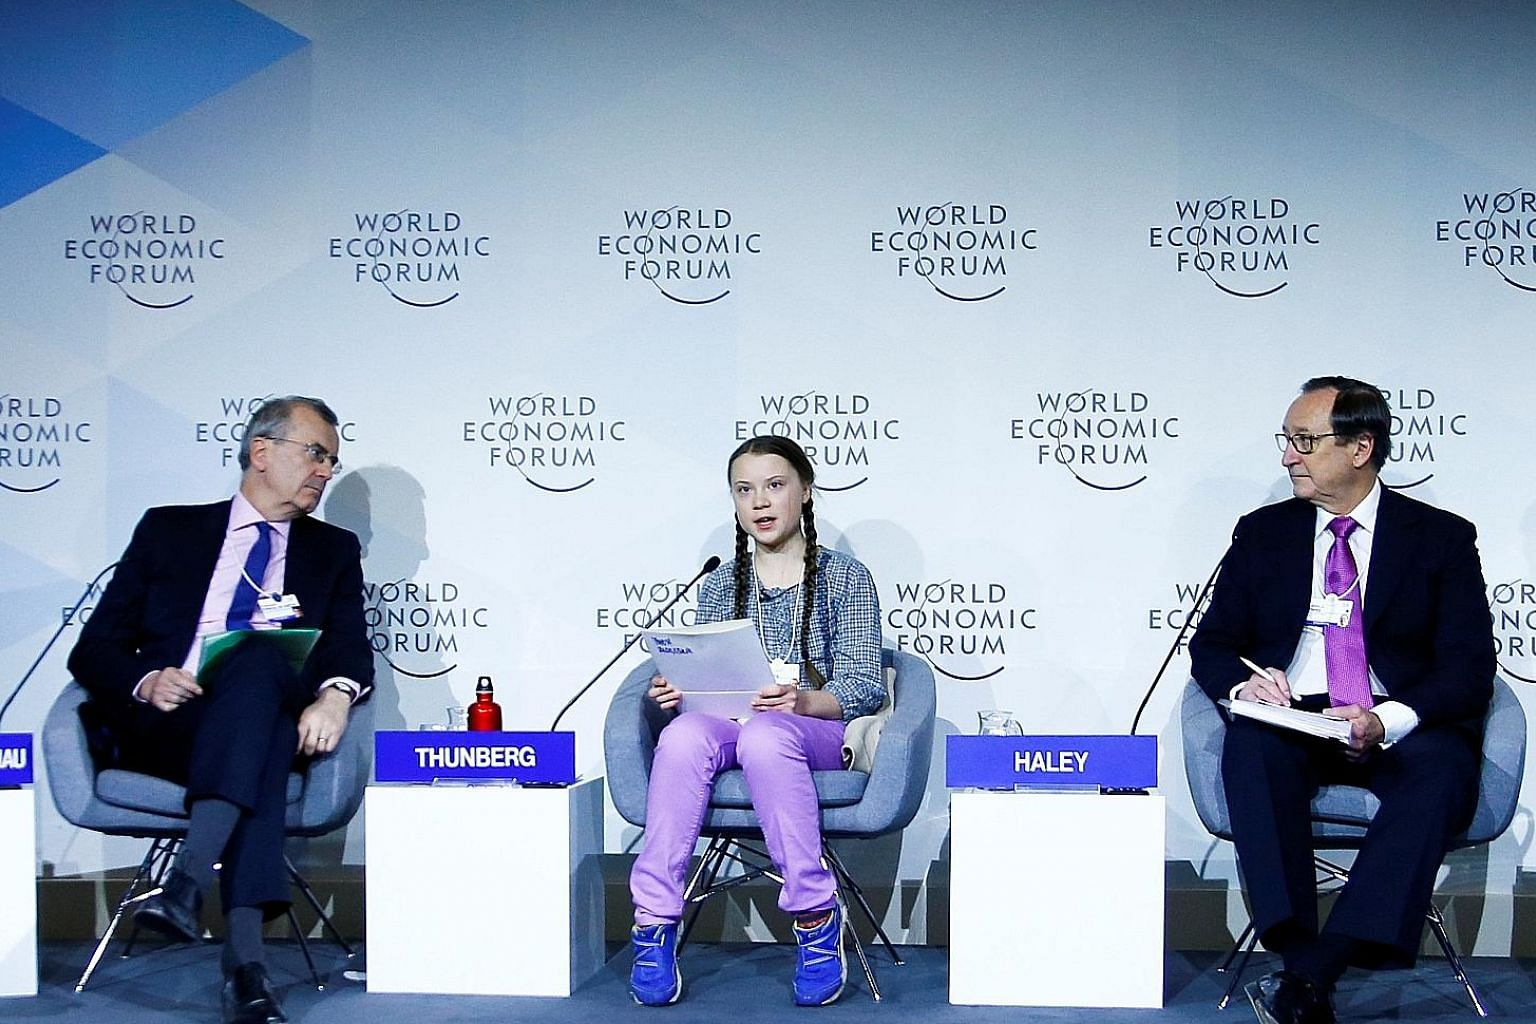 Young climate crusader Greta Thunberg with French central bank governor Francois Villeroy de Galhau (left) and consultancy firm Willis Towers Watson's CEO John Haley at a WEF panel discussion in Davos yesterday.